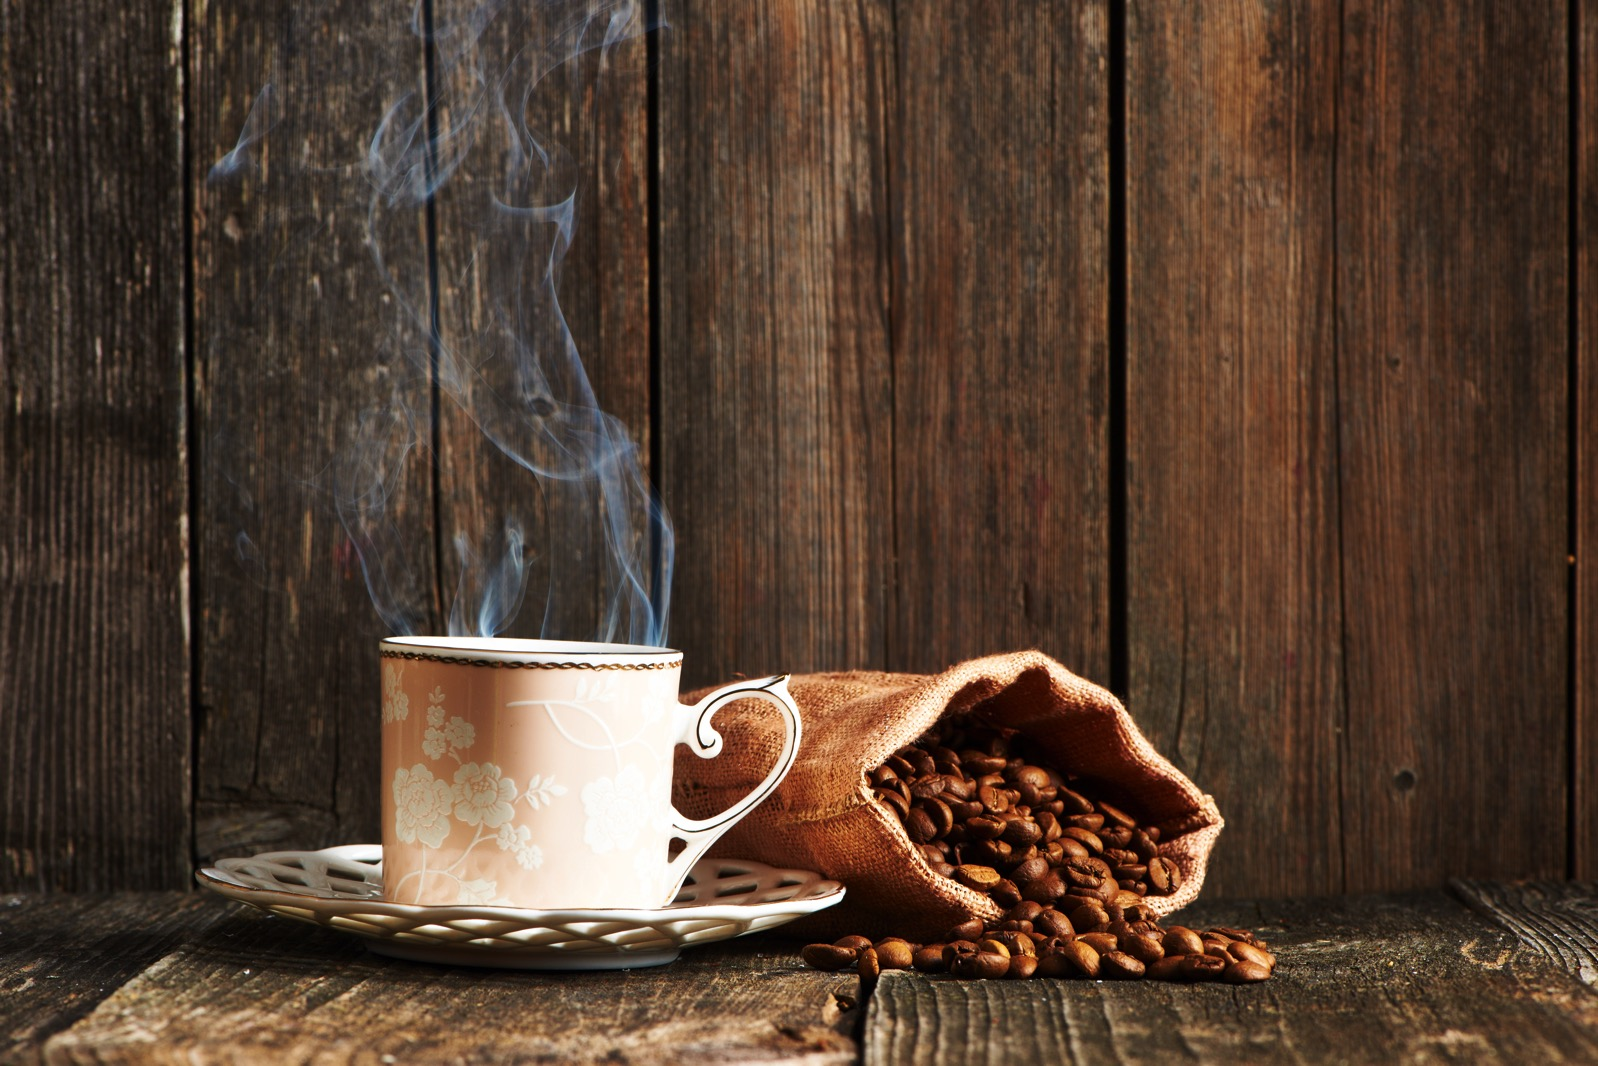 Cup of coffee and coffee beans P38DQV8